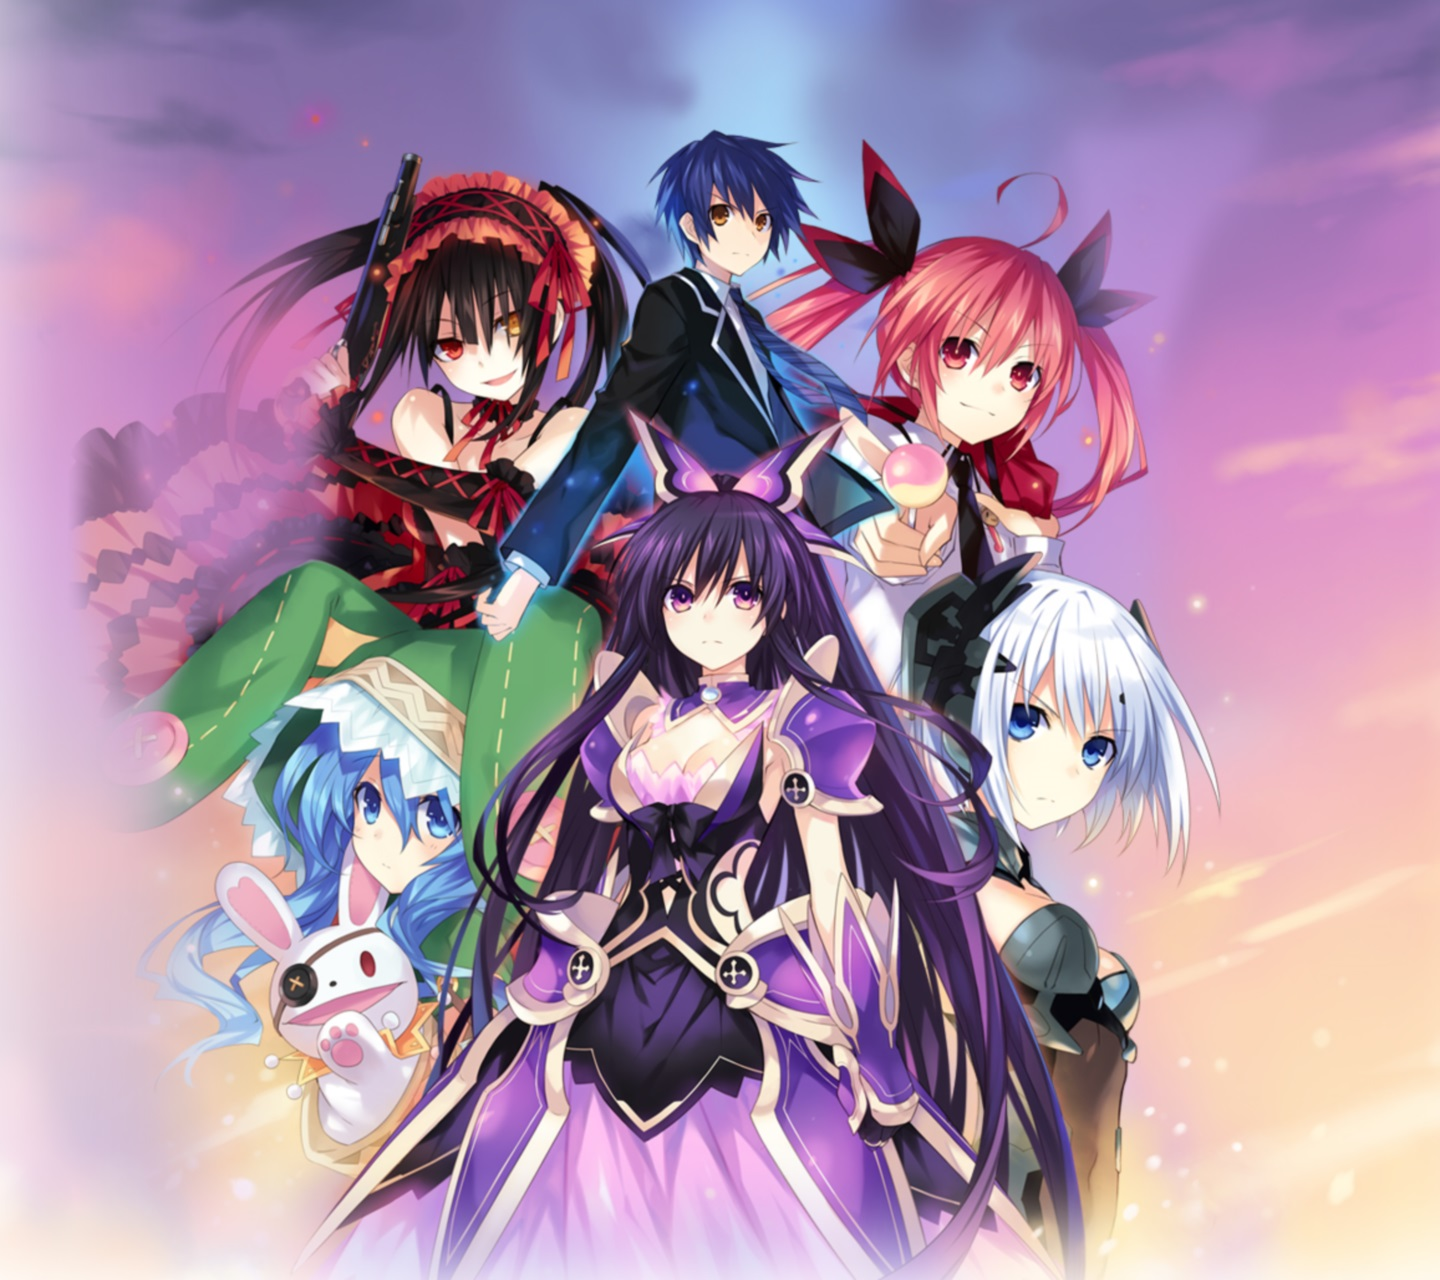 Preview Date A Live 802843 Hd Wallpaper Backgrounds Download